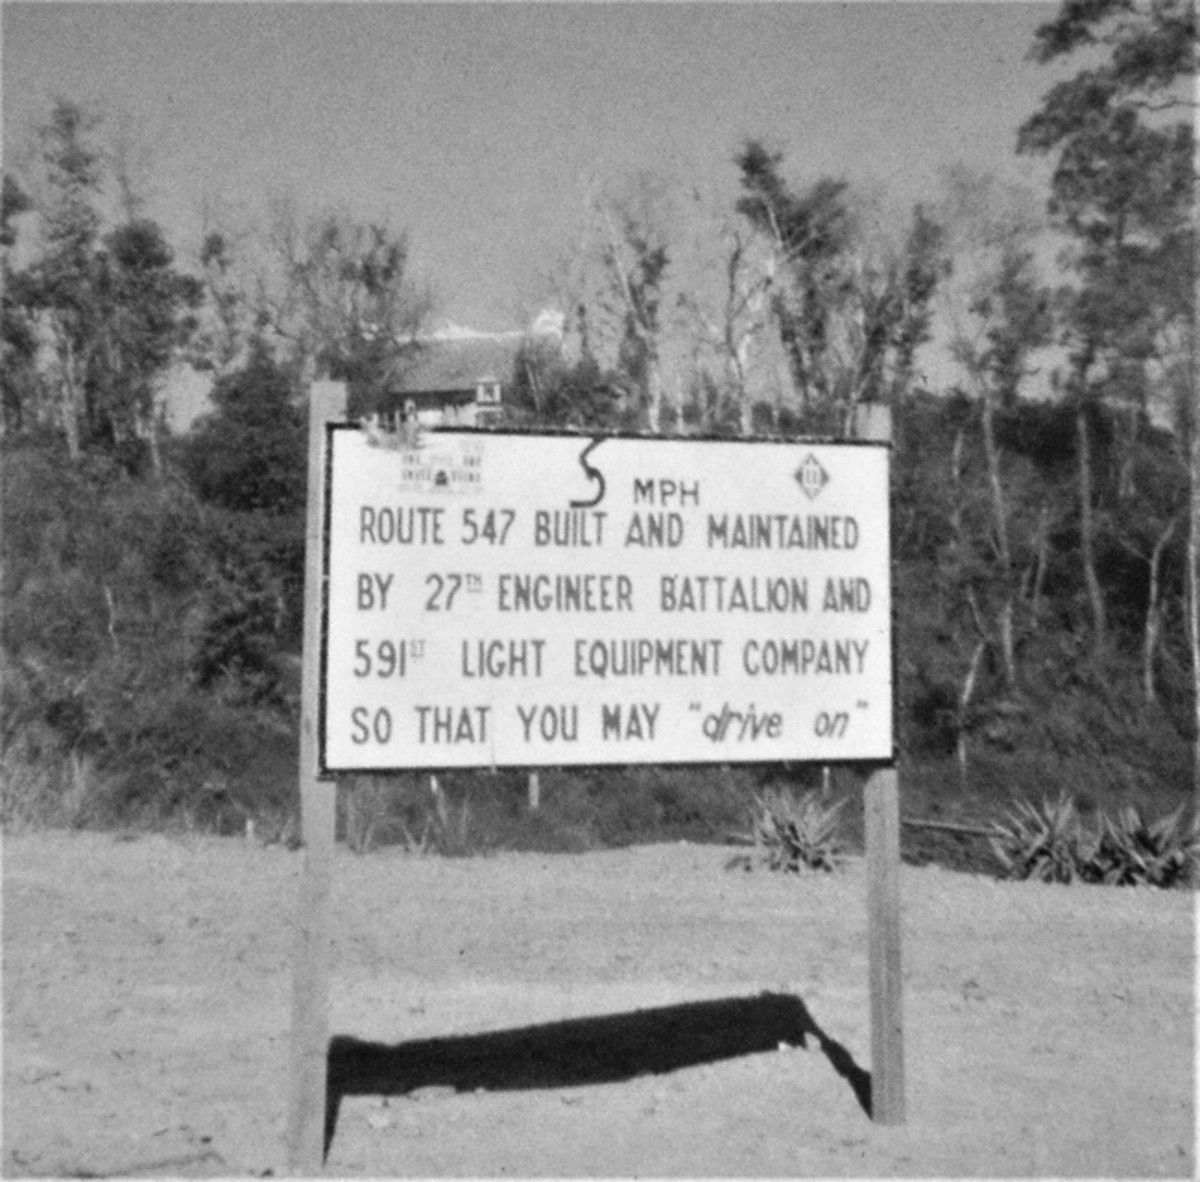 Sign on Highway Route 547 announcing construction by the 591st Engineer (Light Equipment) Company near the northern Vietnam city of Hue leading into the A Shau Valley.